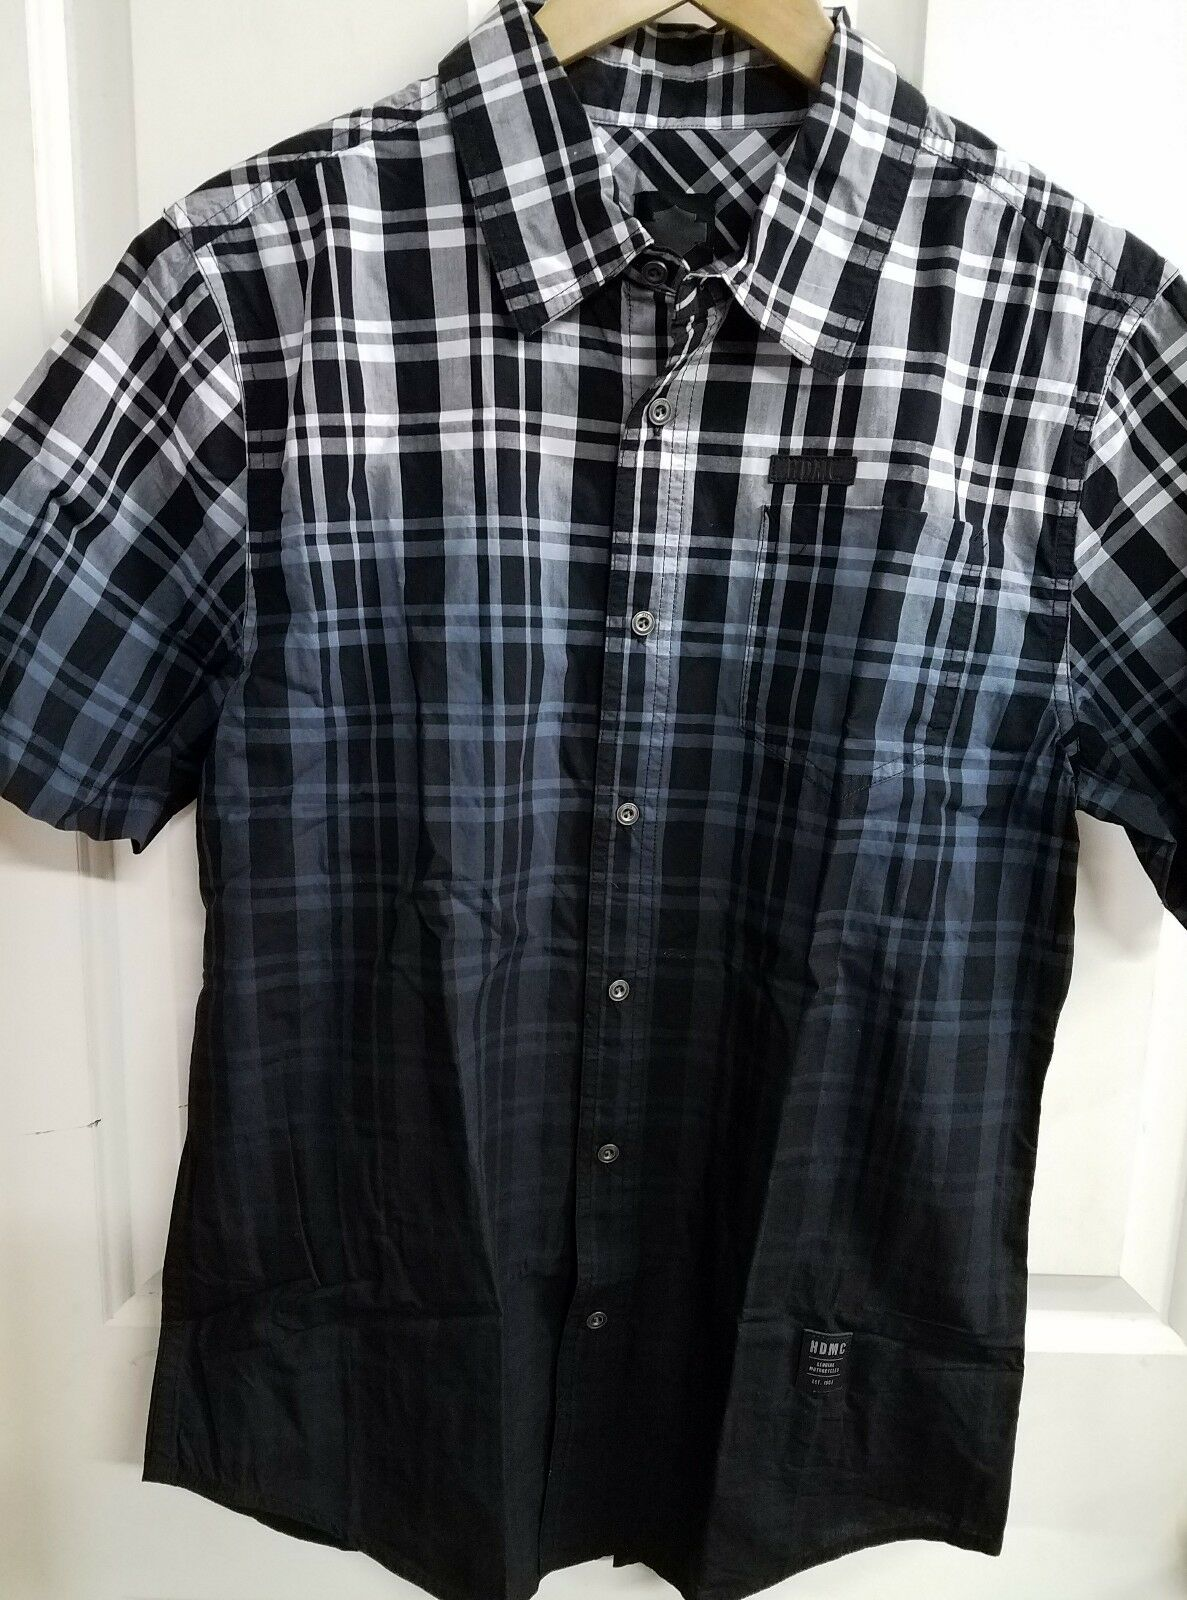 NWT Harley-Davidson men's shirt, MEDIUM